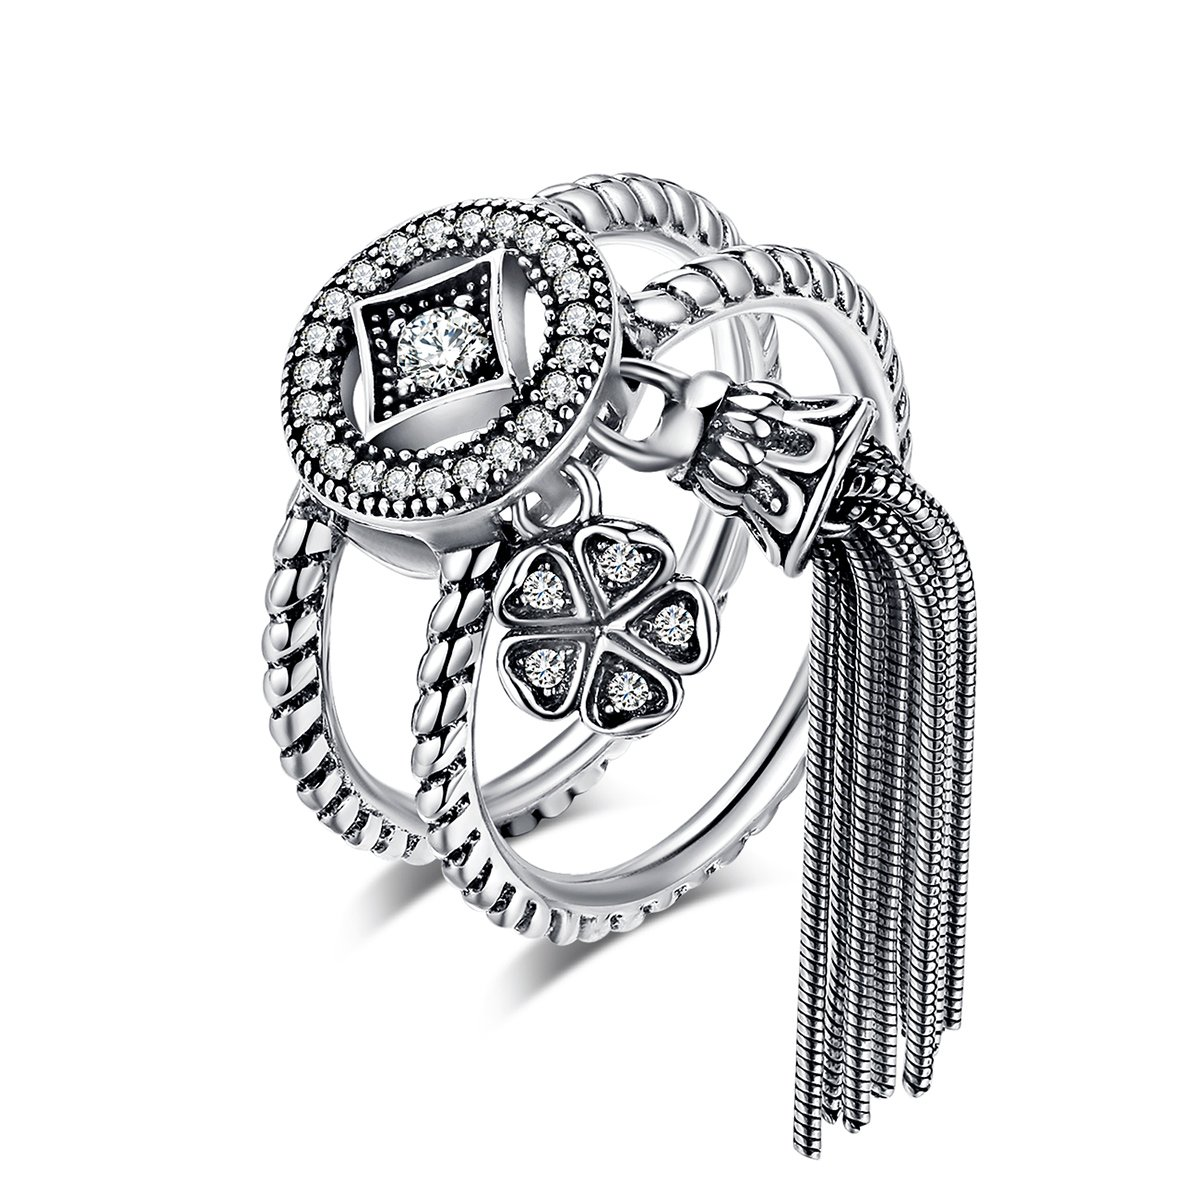 Everbling Double Layer Round & Geometric Long Tassel 925 Sterling Silver Ring, Clear CZ